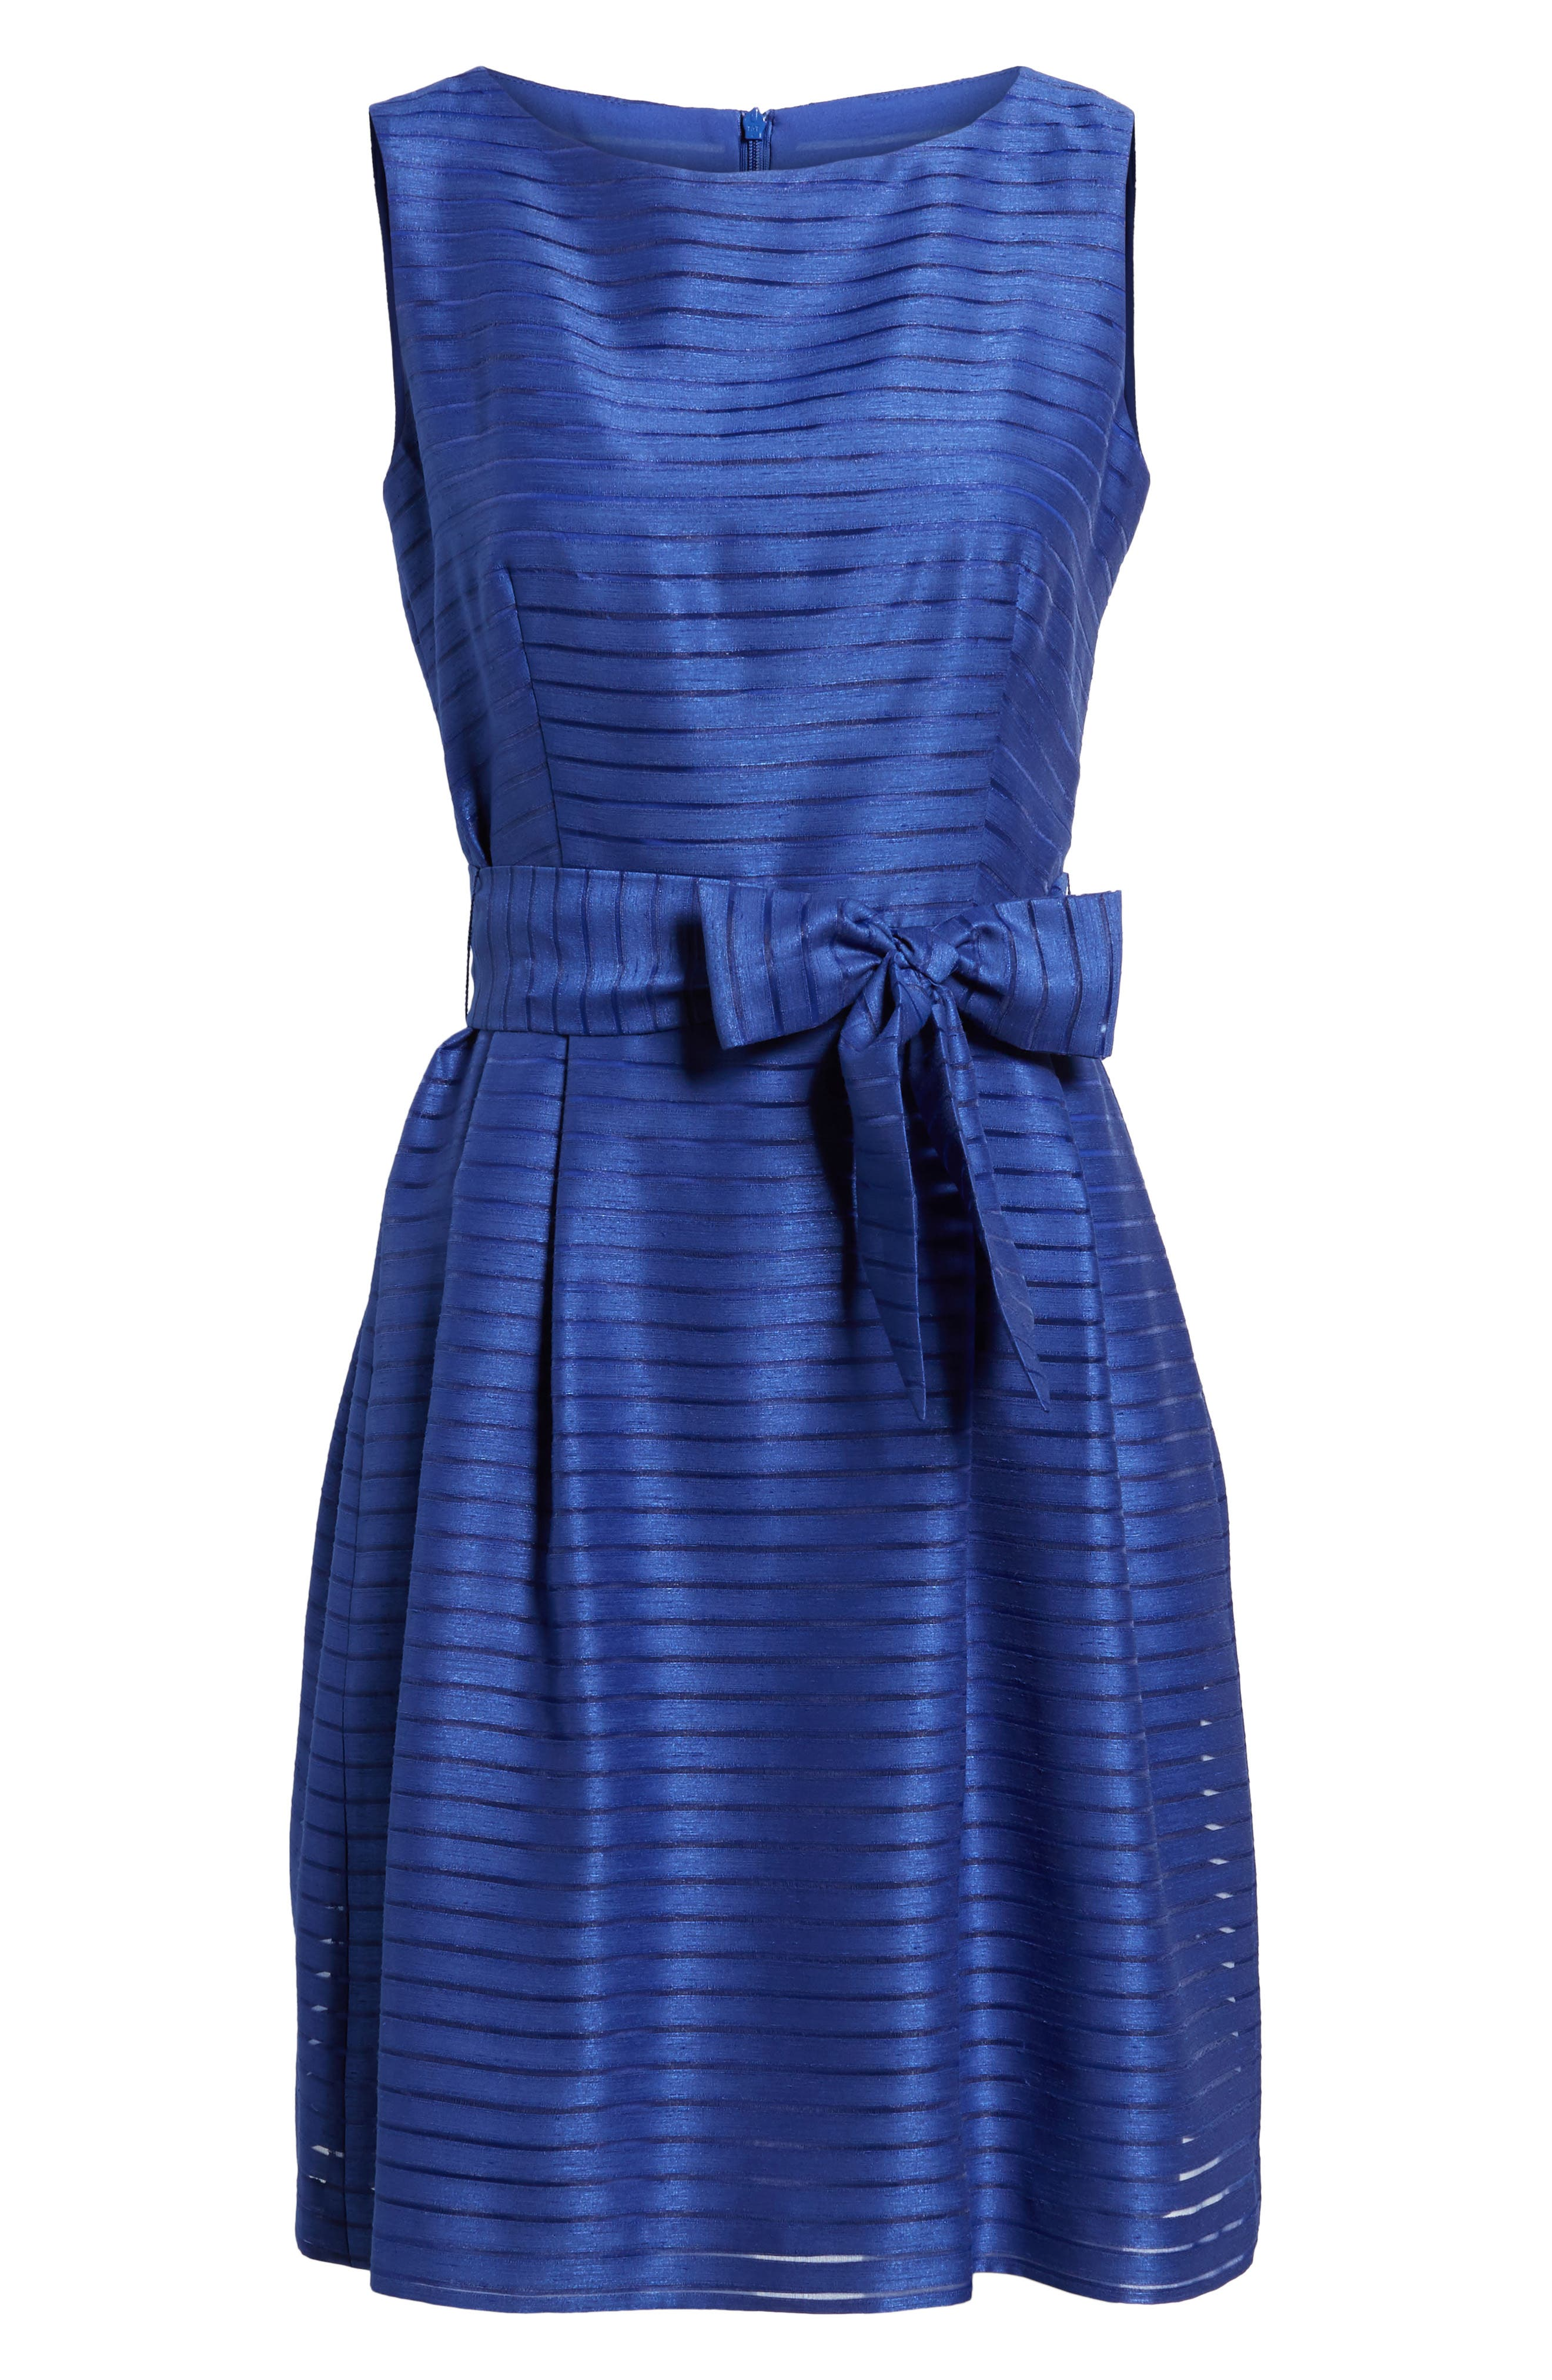 ANNE KLEIN,                             Shadow Stripe Fit & Flare Dress,                             Alternate thumbnail 6, color,                             430